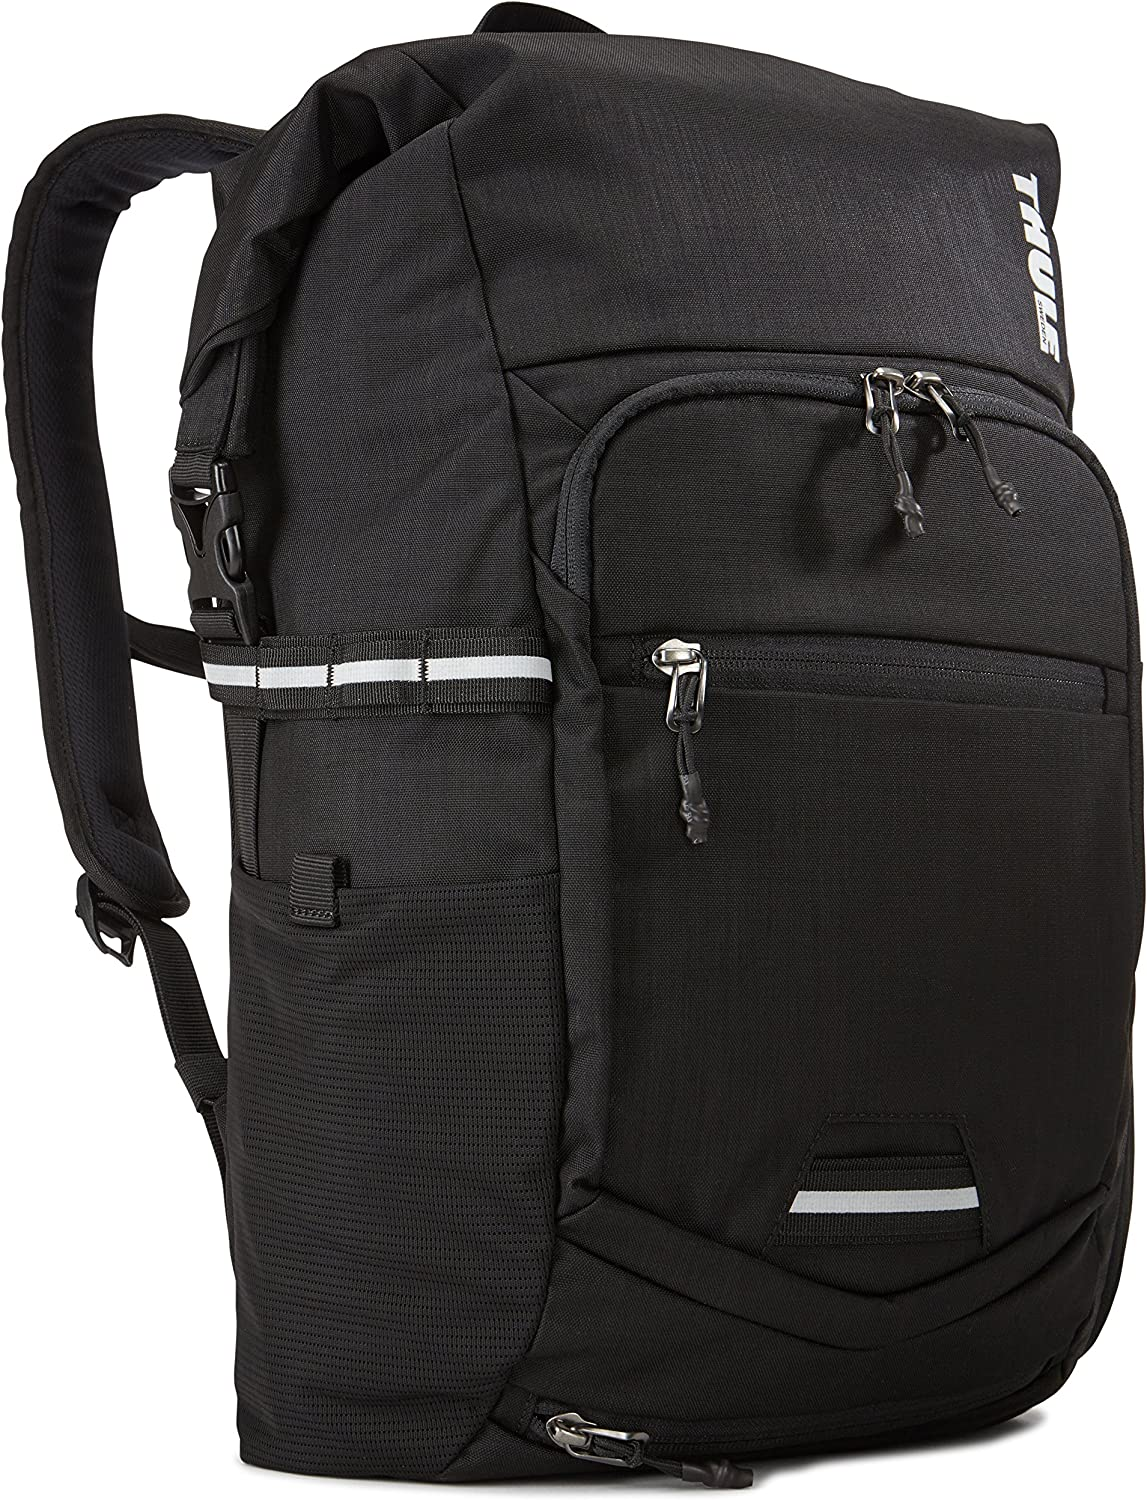 thule cycling backpack